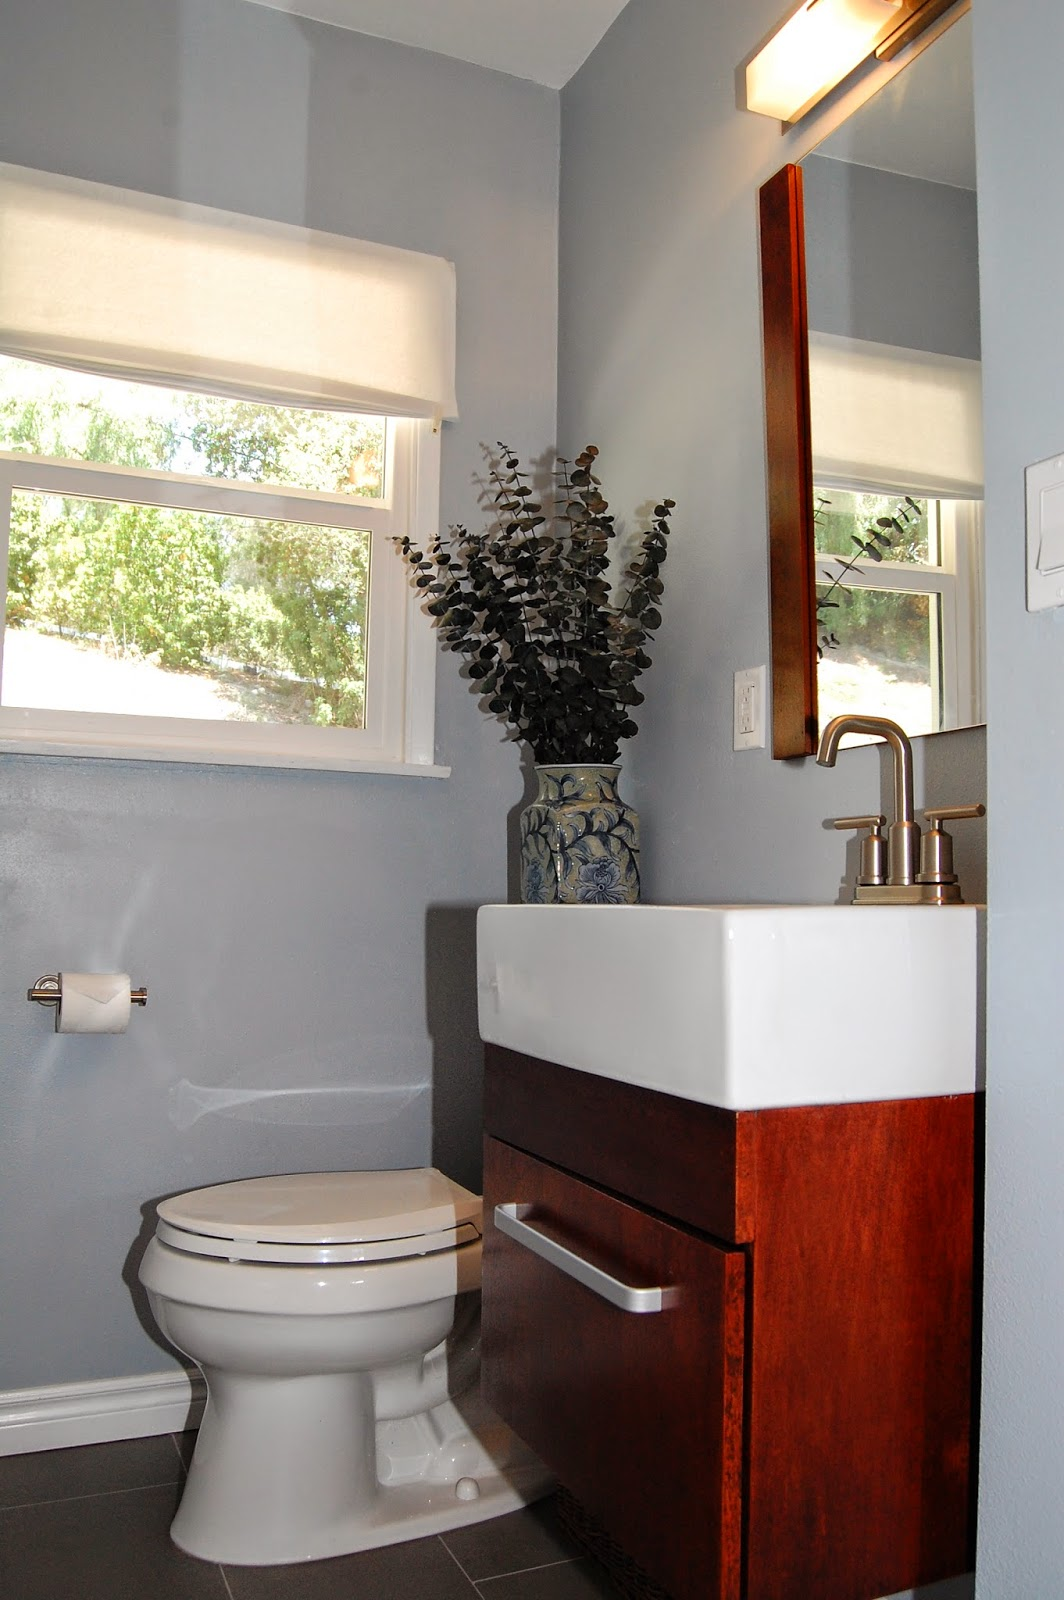 CAD INTERIORS guest bathroom renovation modern classic transitional